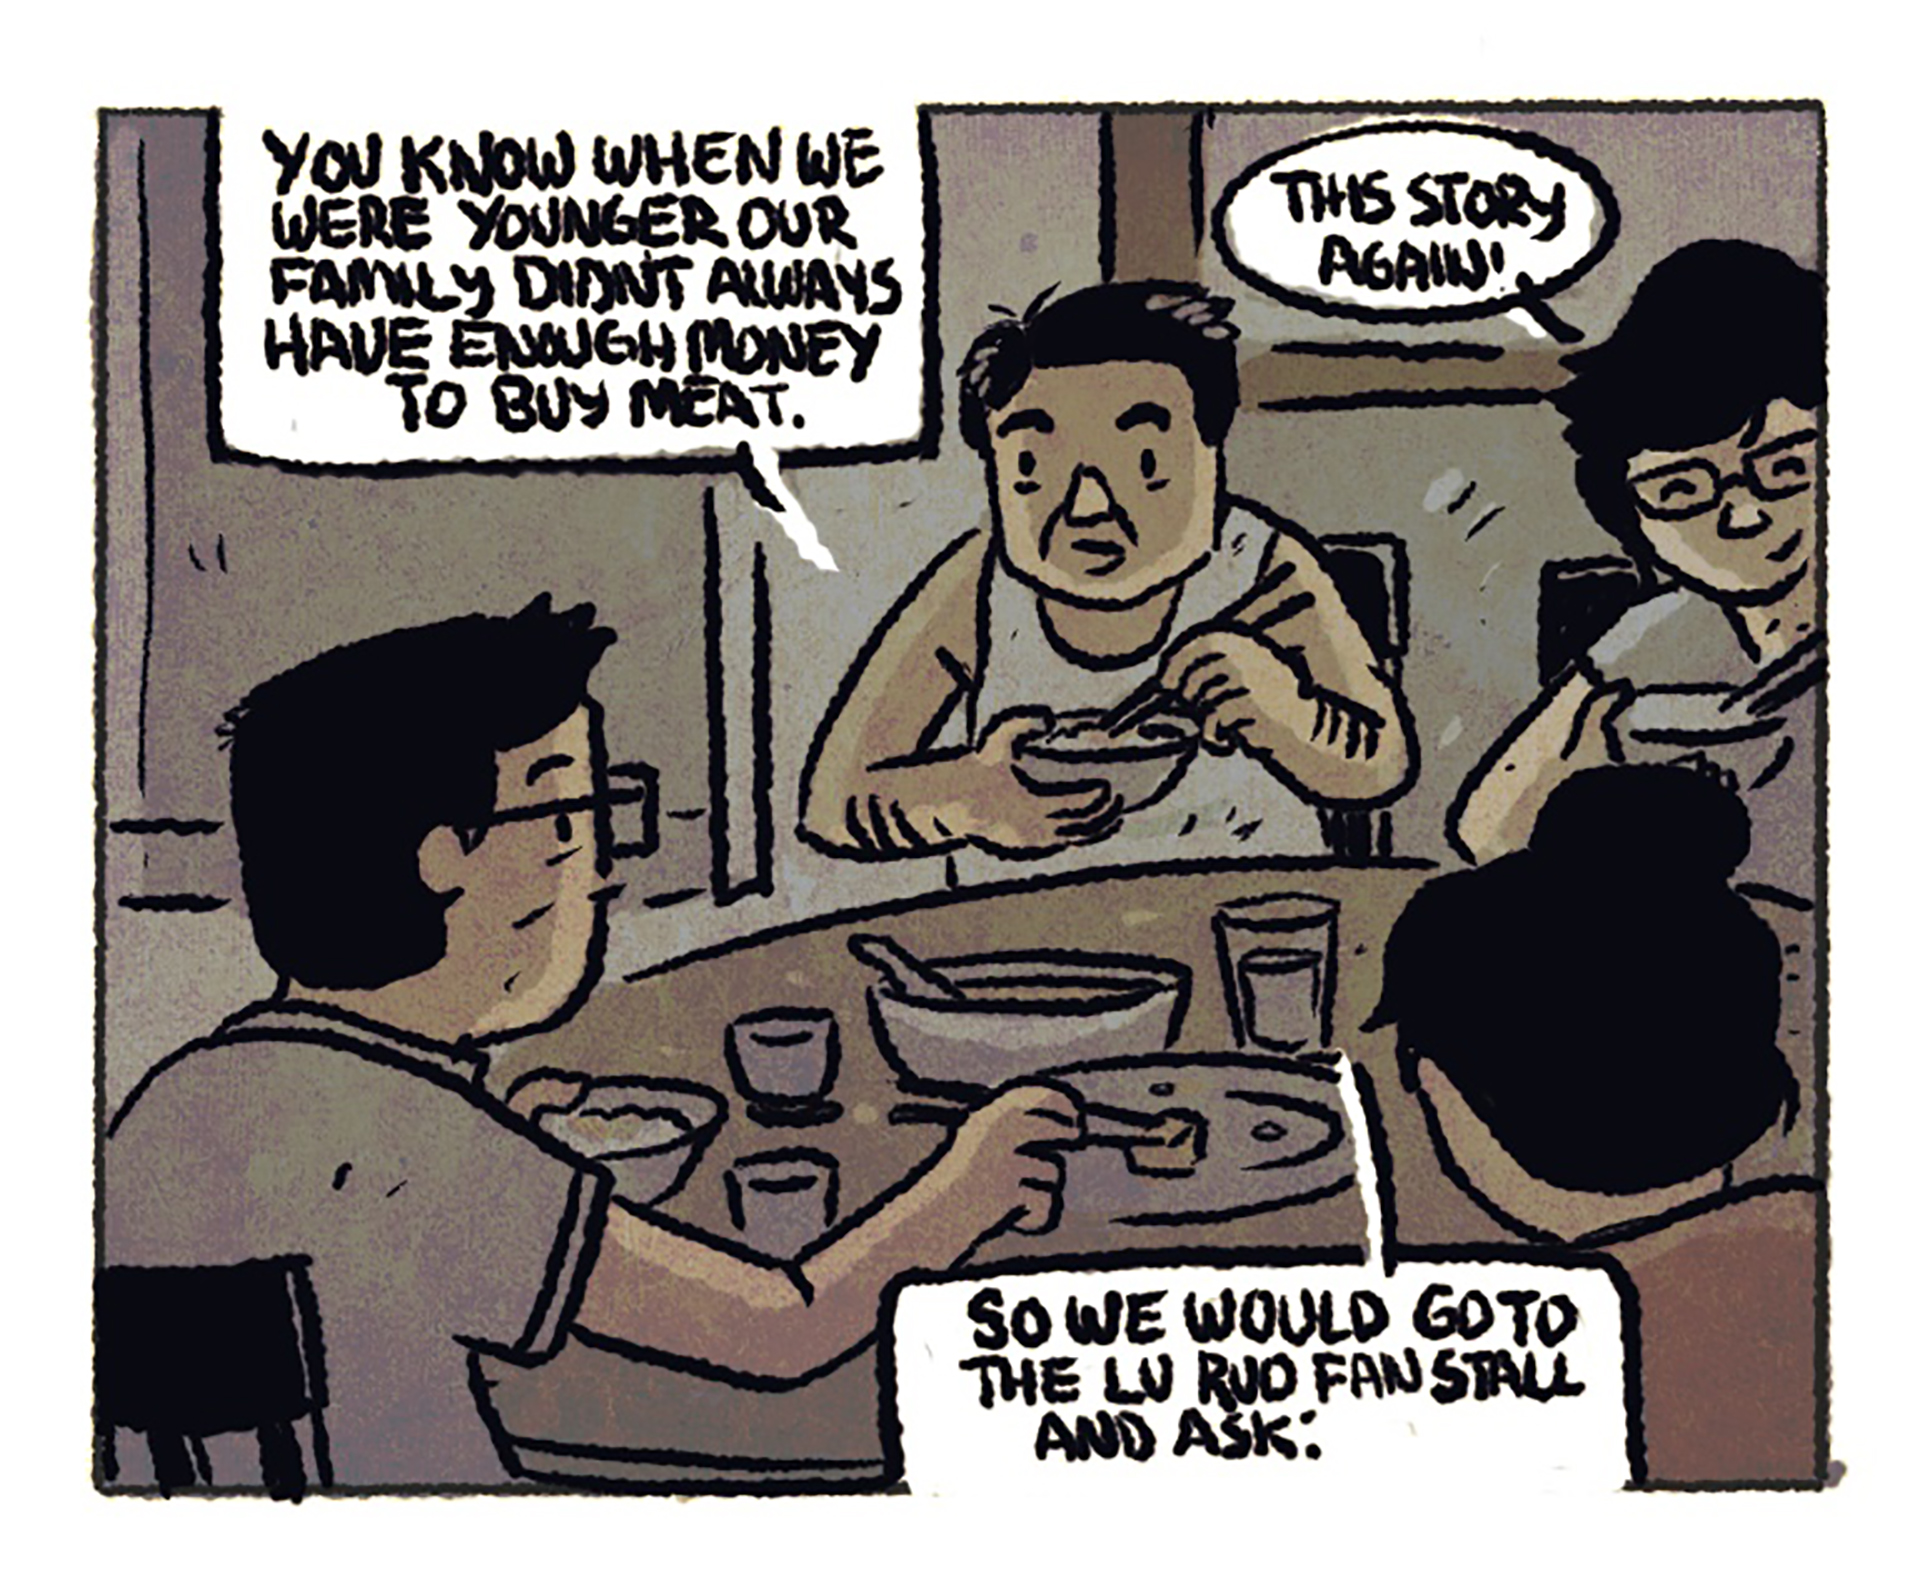 """The scene shifts to a flashback; a Taiwanese family sits around the dinner table, including an older gentleman in a white tank top. Speech bubble #1: """"You know when we were younger our family didn't always have enough money to buy meat."""" Speech bubble #2: """"This story again?"""" Speech bubble #3: """"So we would go to the lu rou fan stall and ask:"""""""